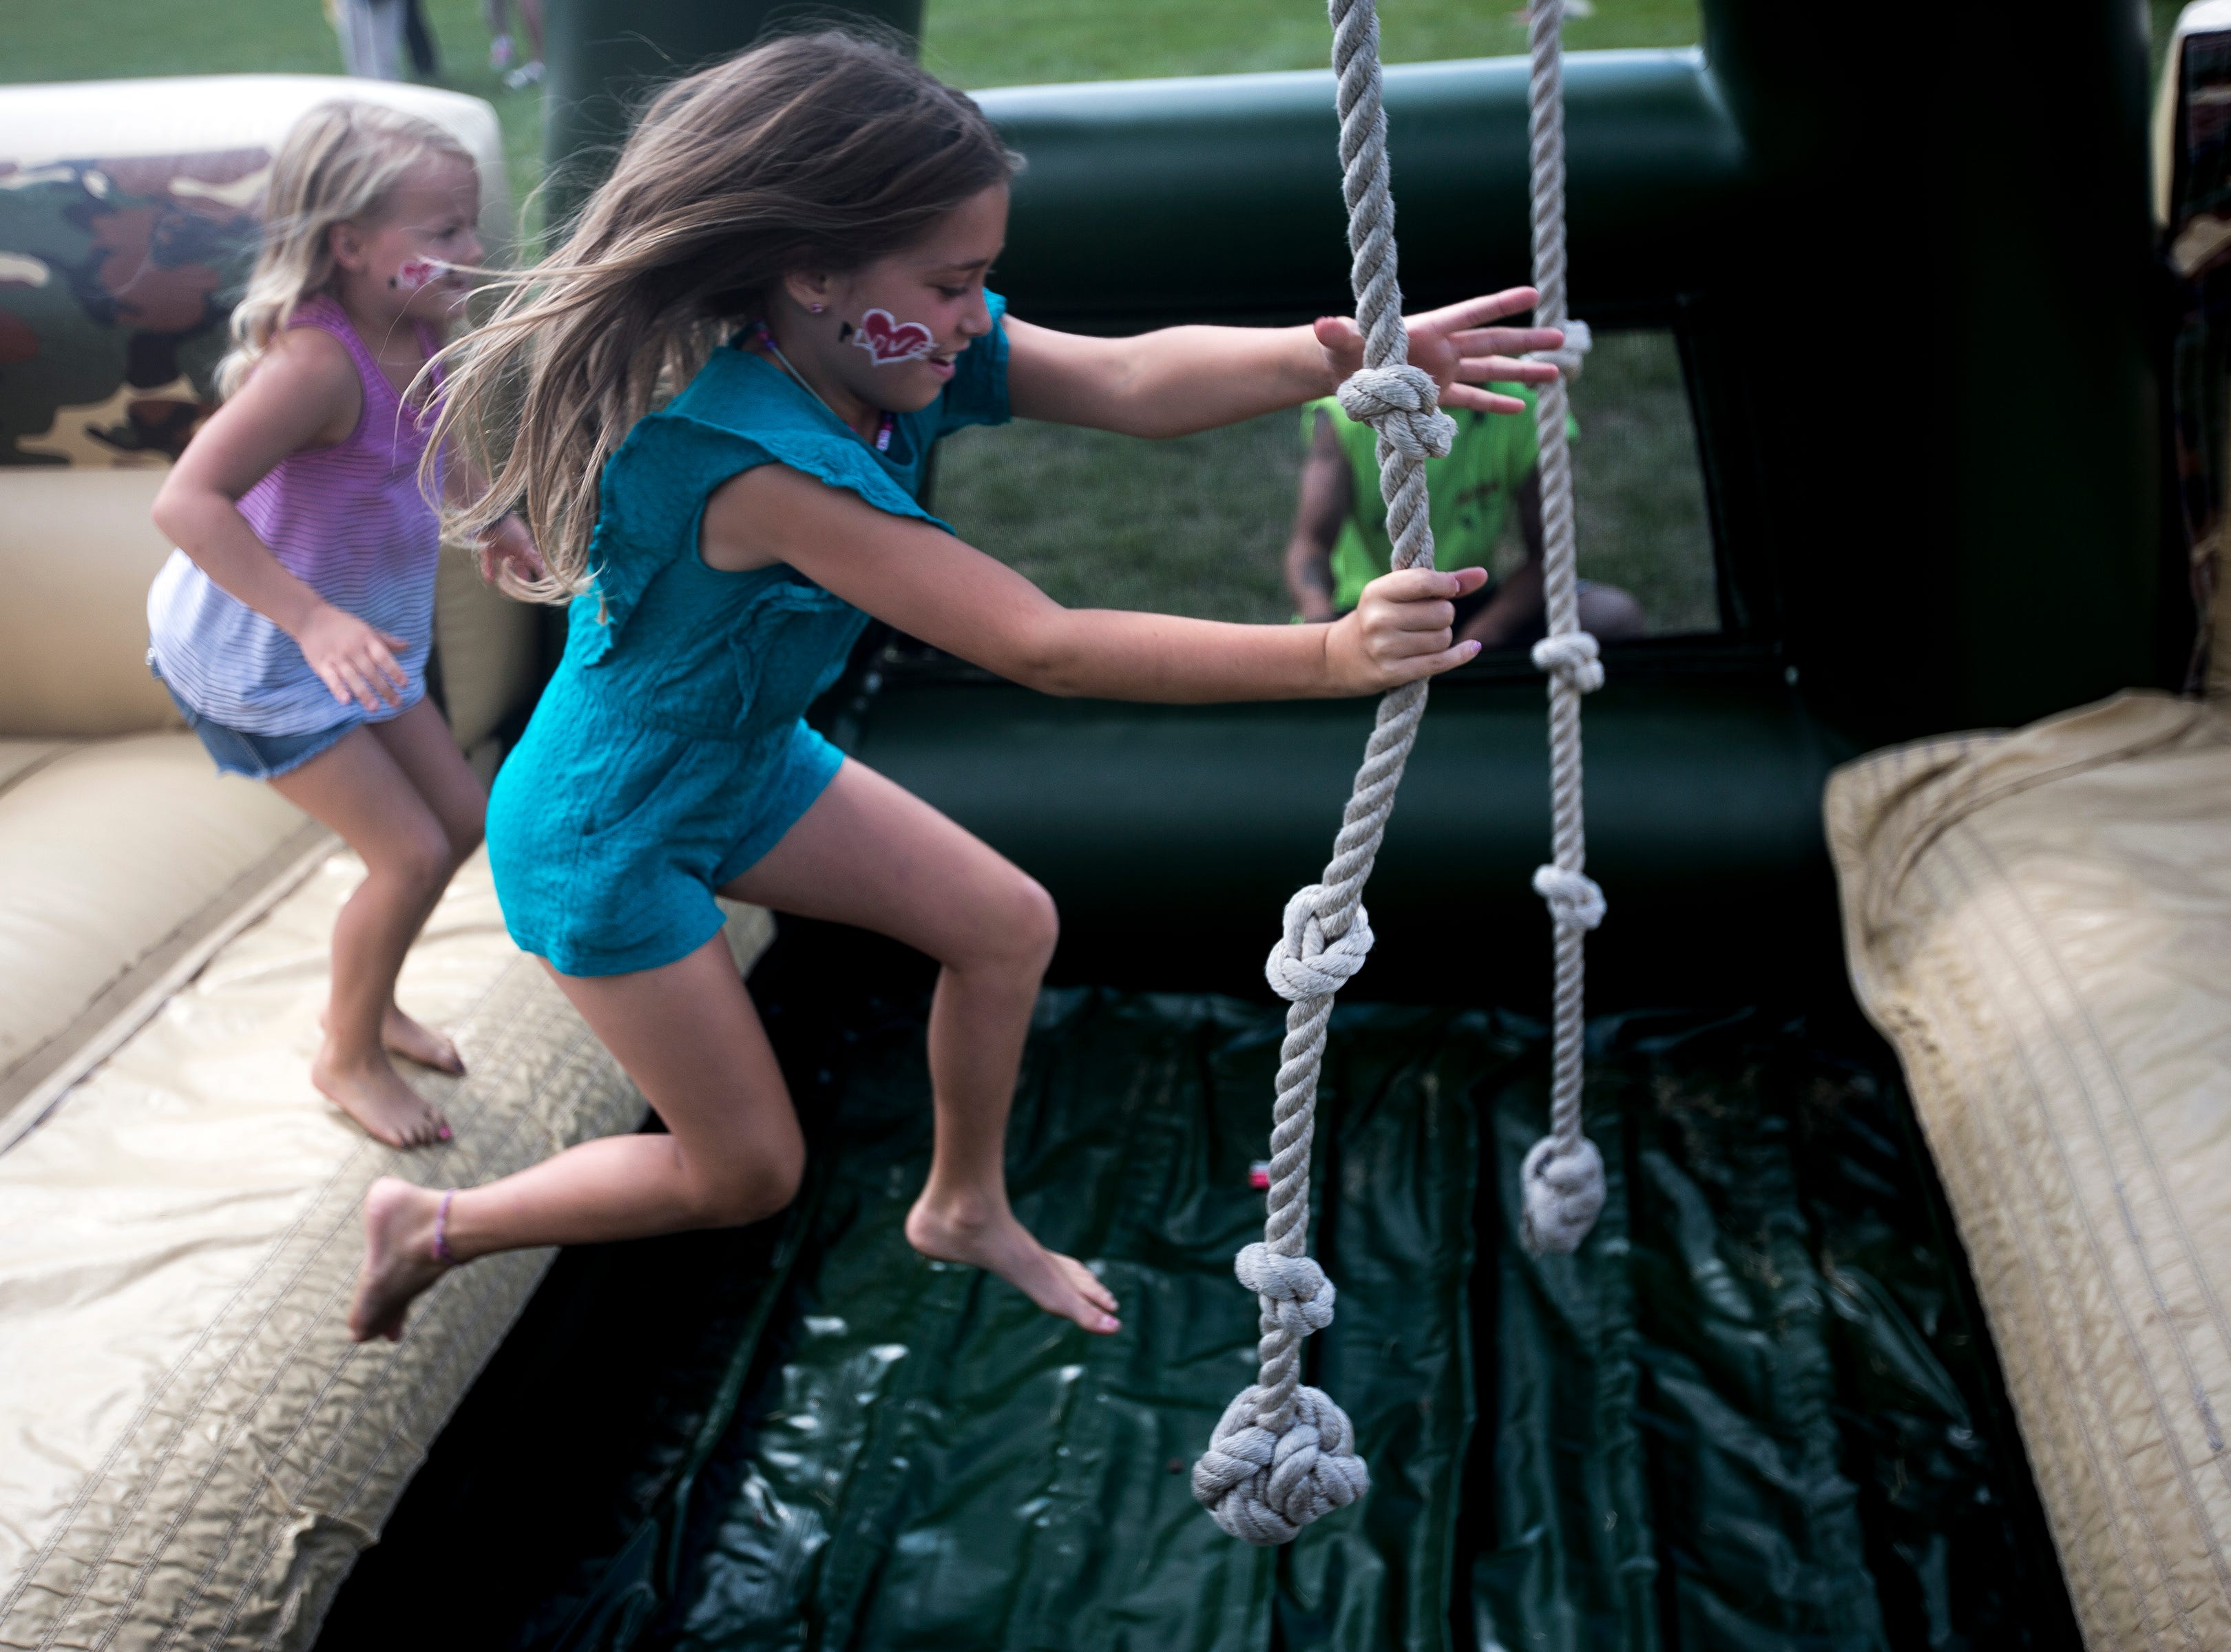 Girls play on an inflatable obstacle course during Celebrate Plover at Lake Pacawa Park in Plover, Wis., July 28, 2018.